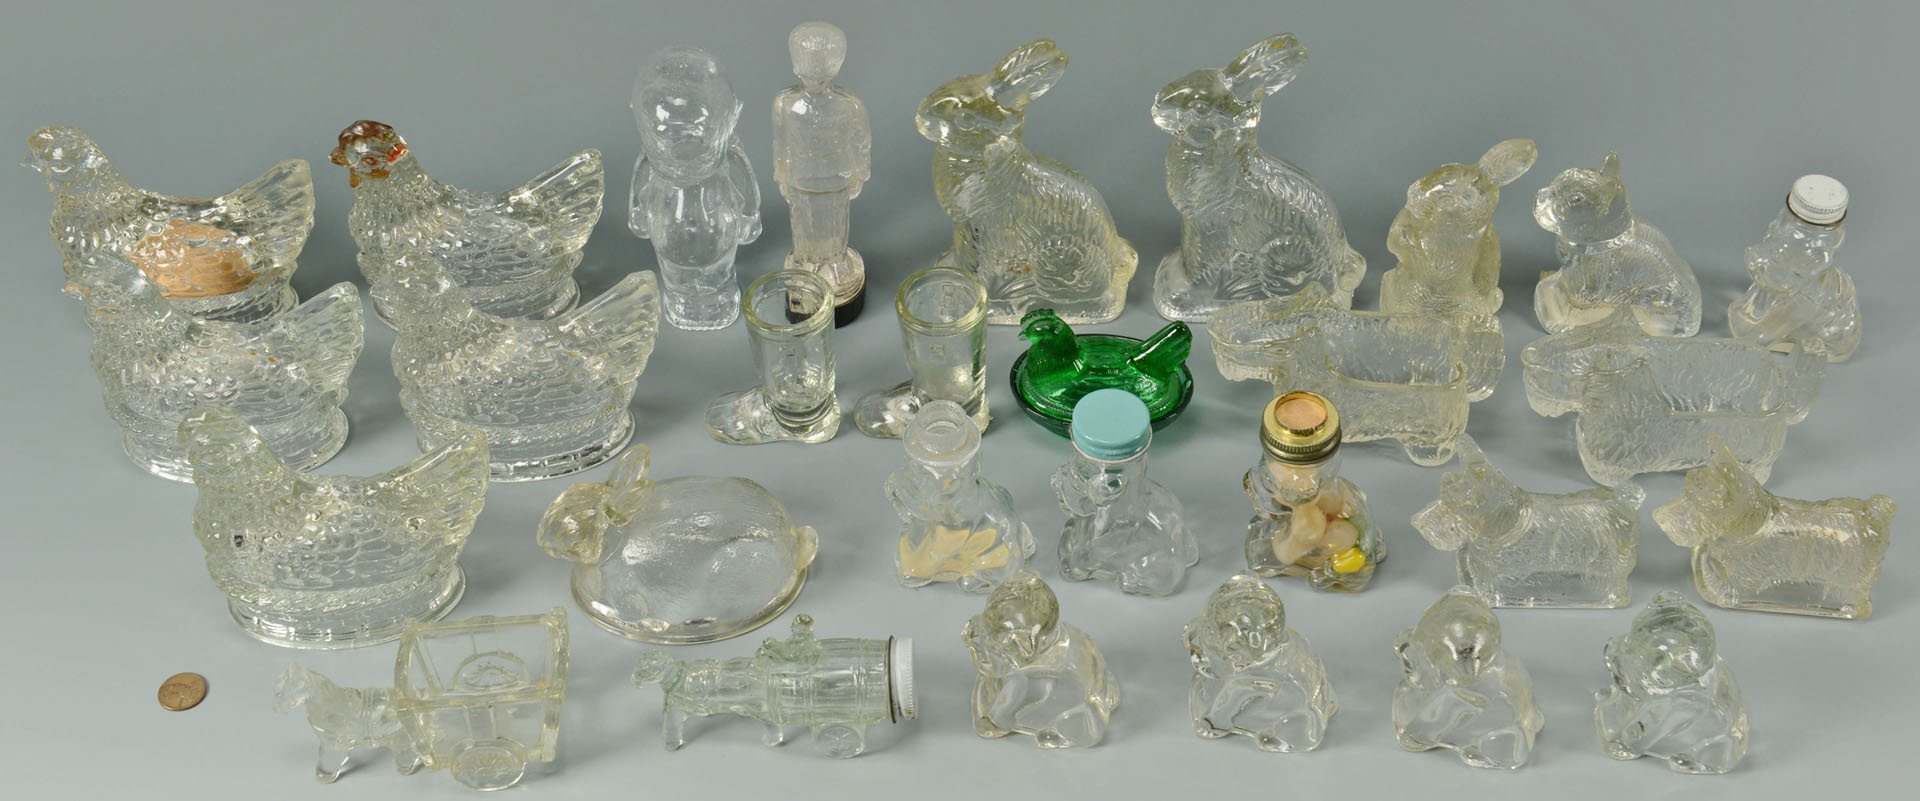 29 American Glass Candy Containers